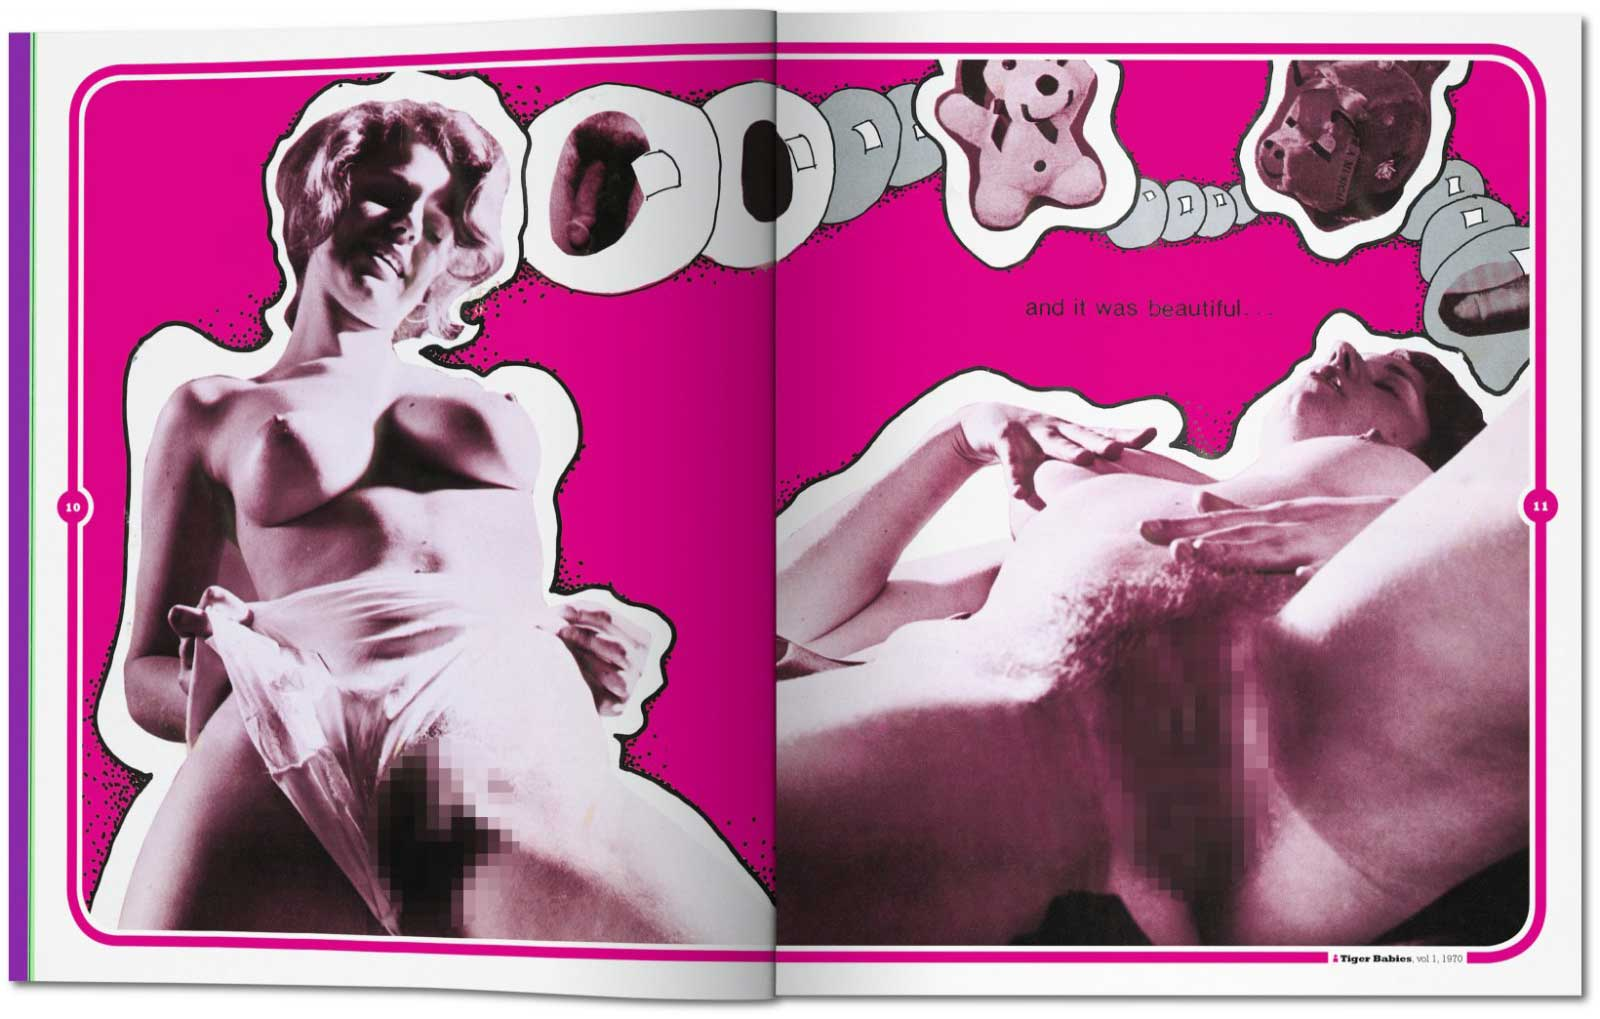 psychedelic-sex-book-spreads